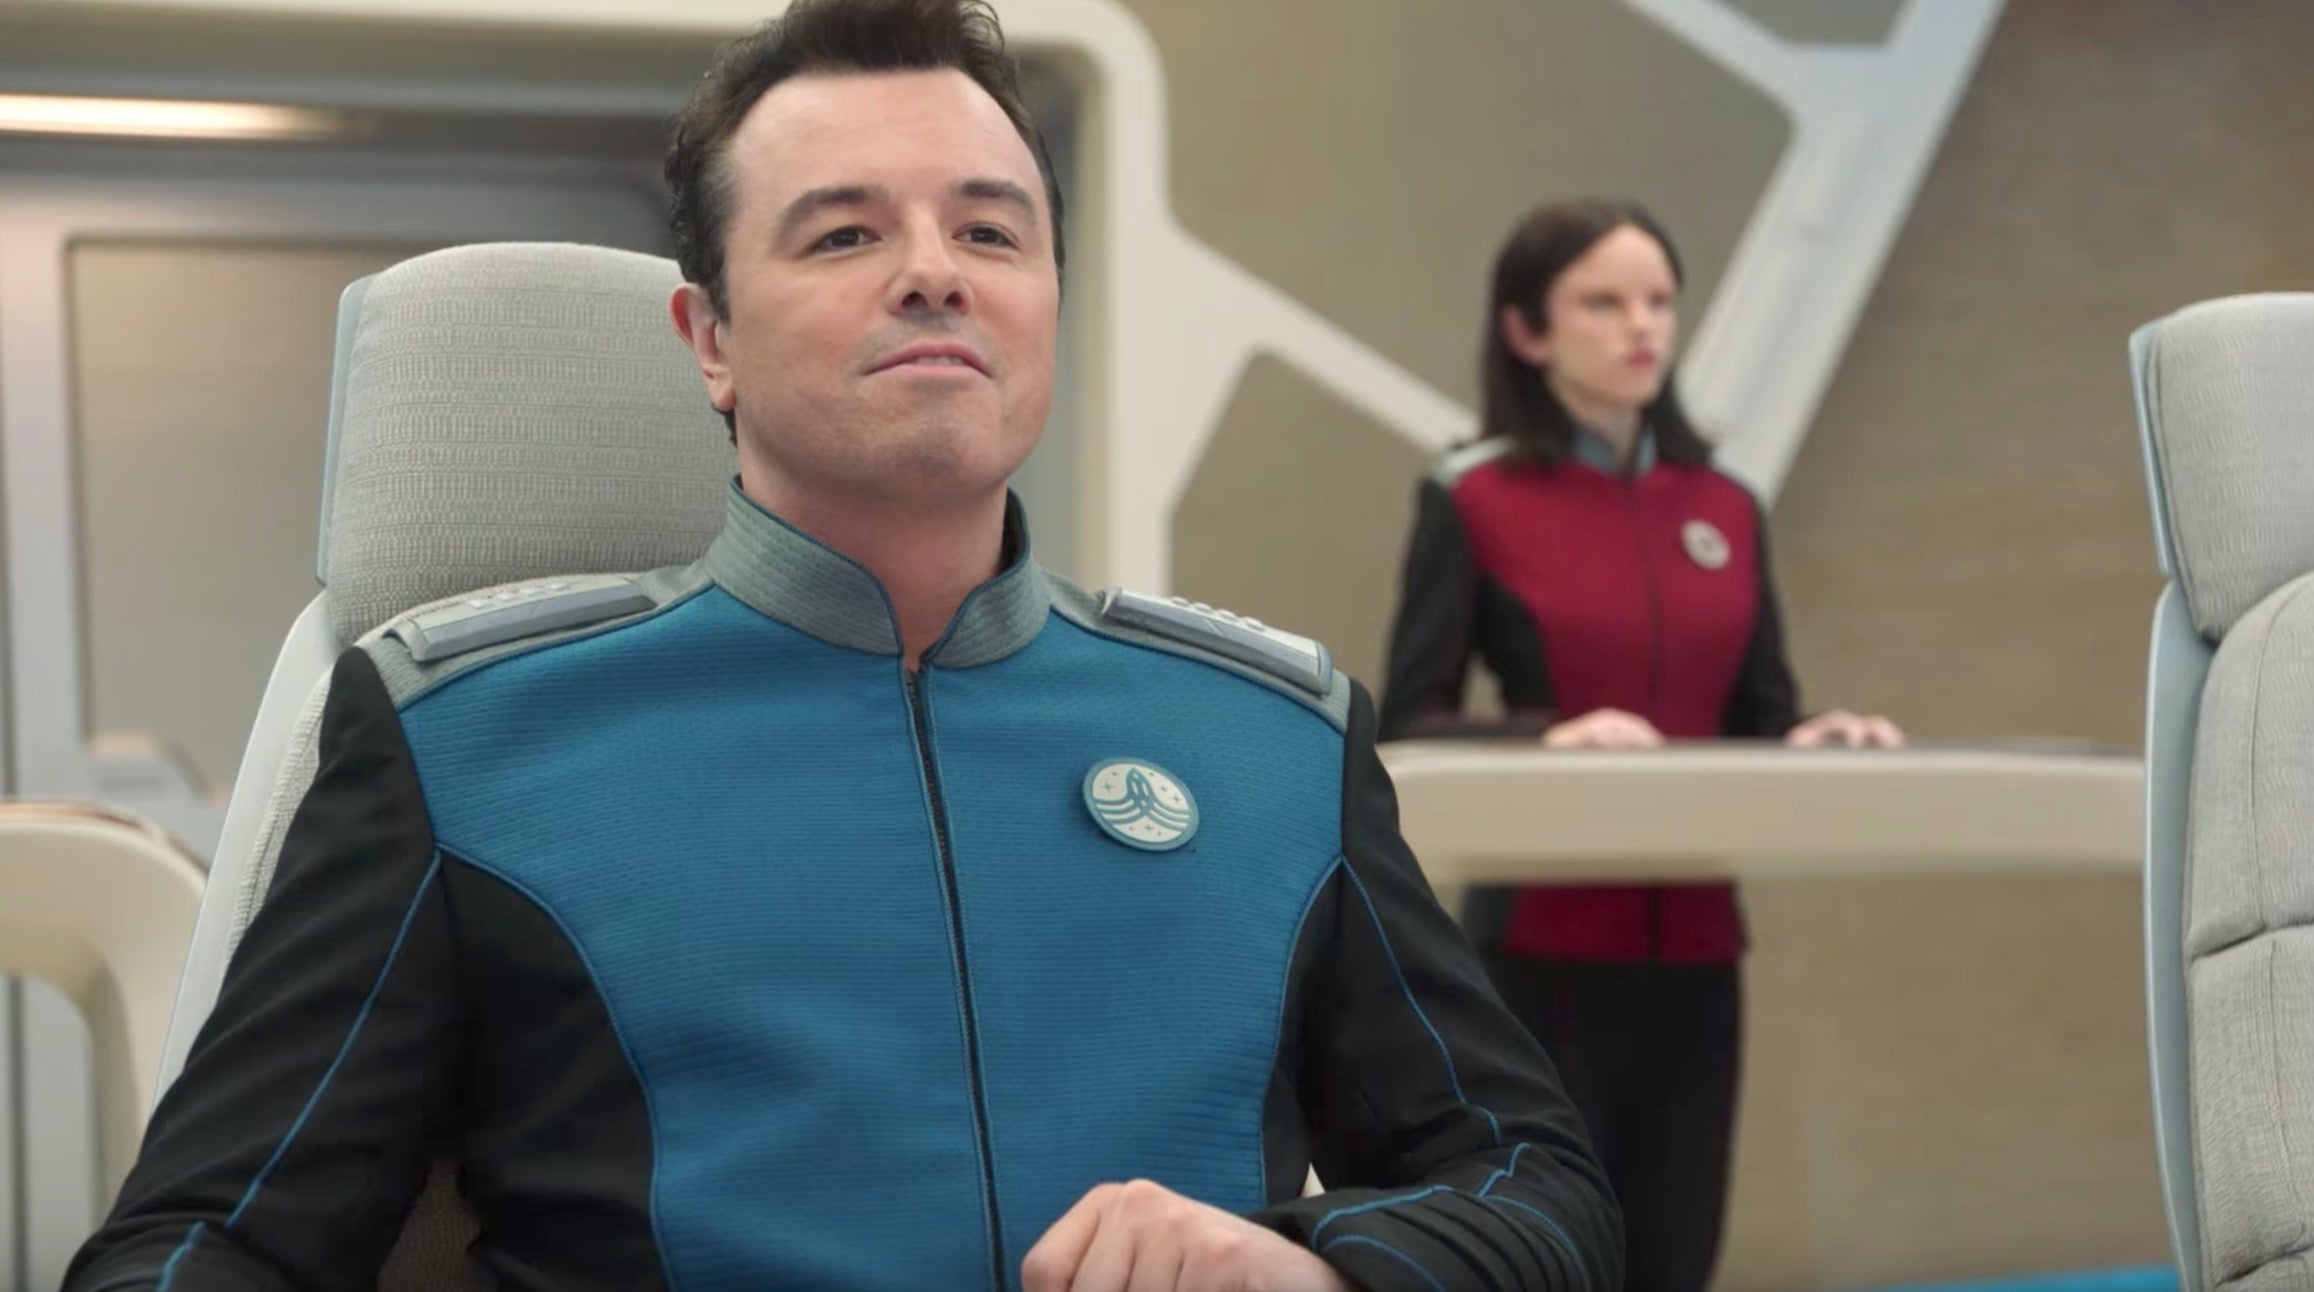 The First Trailer For Seth MacFarlane's Star Trek Spoof, The Orville, Looks Perfect